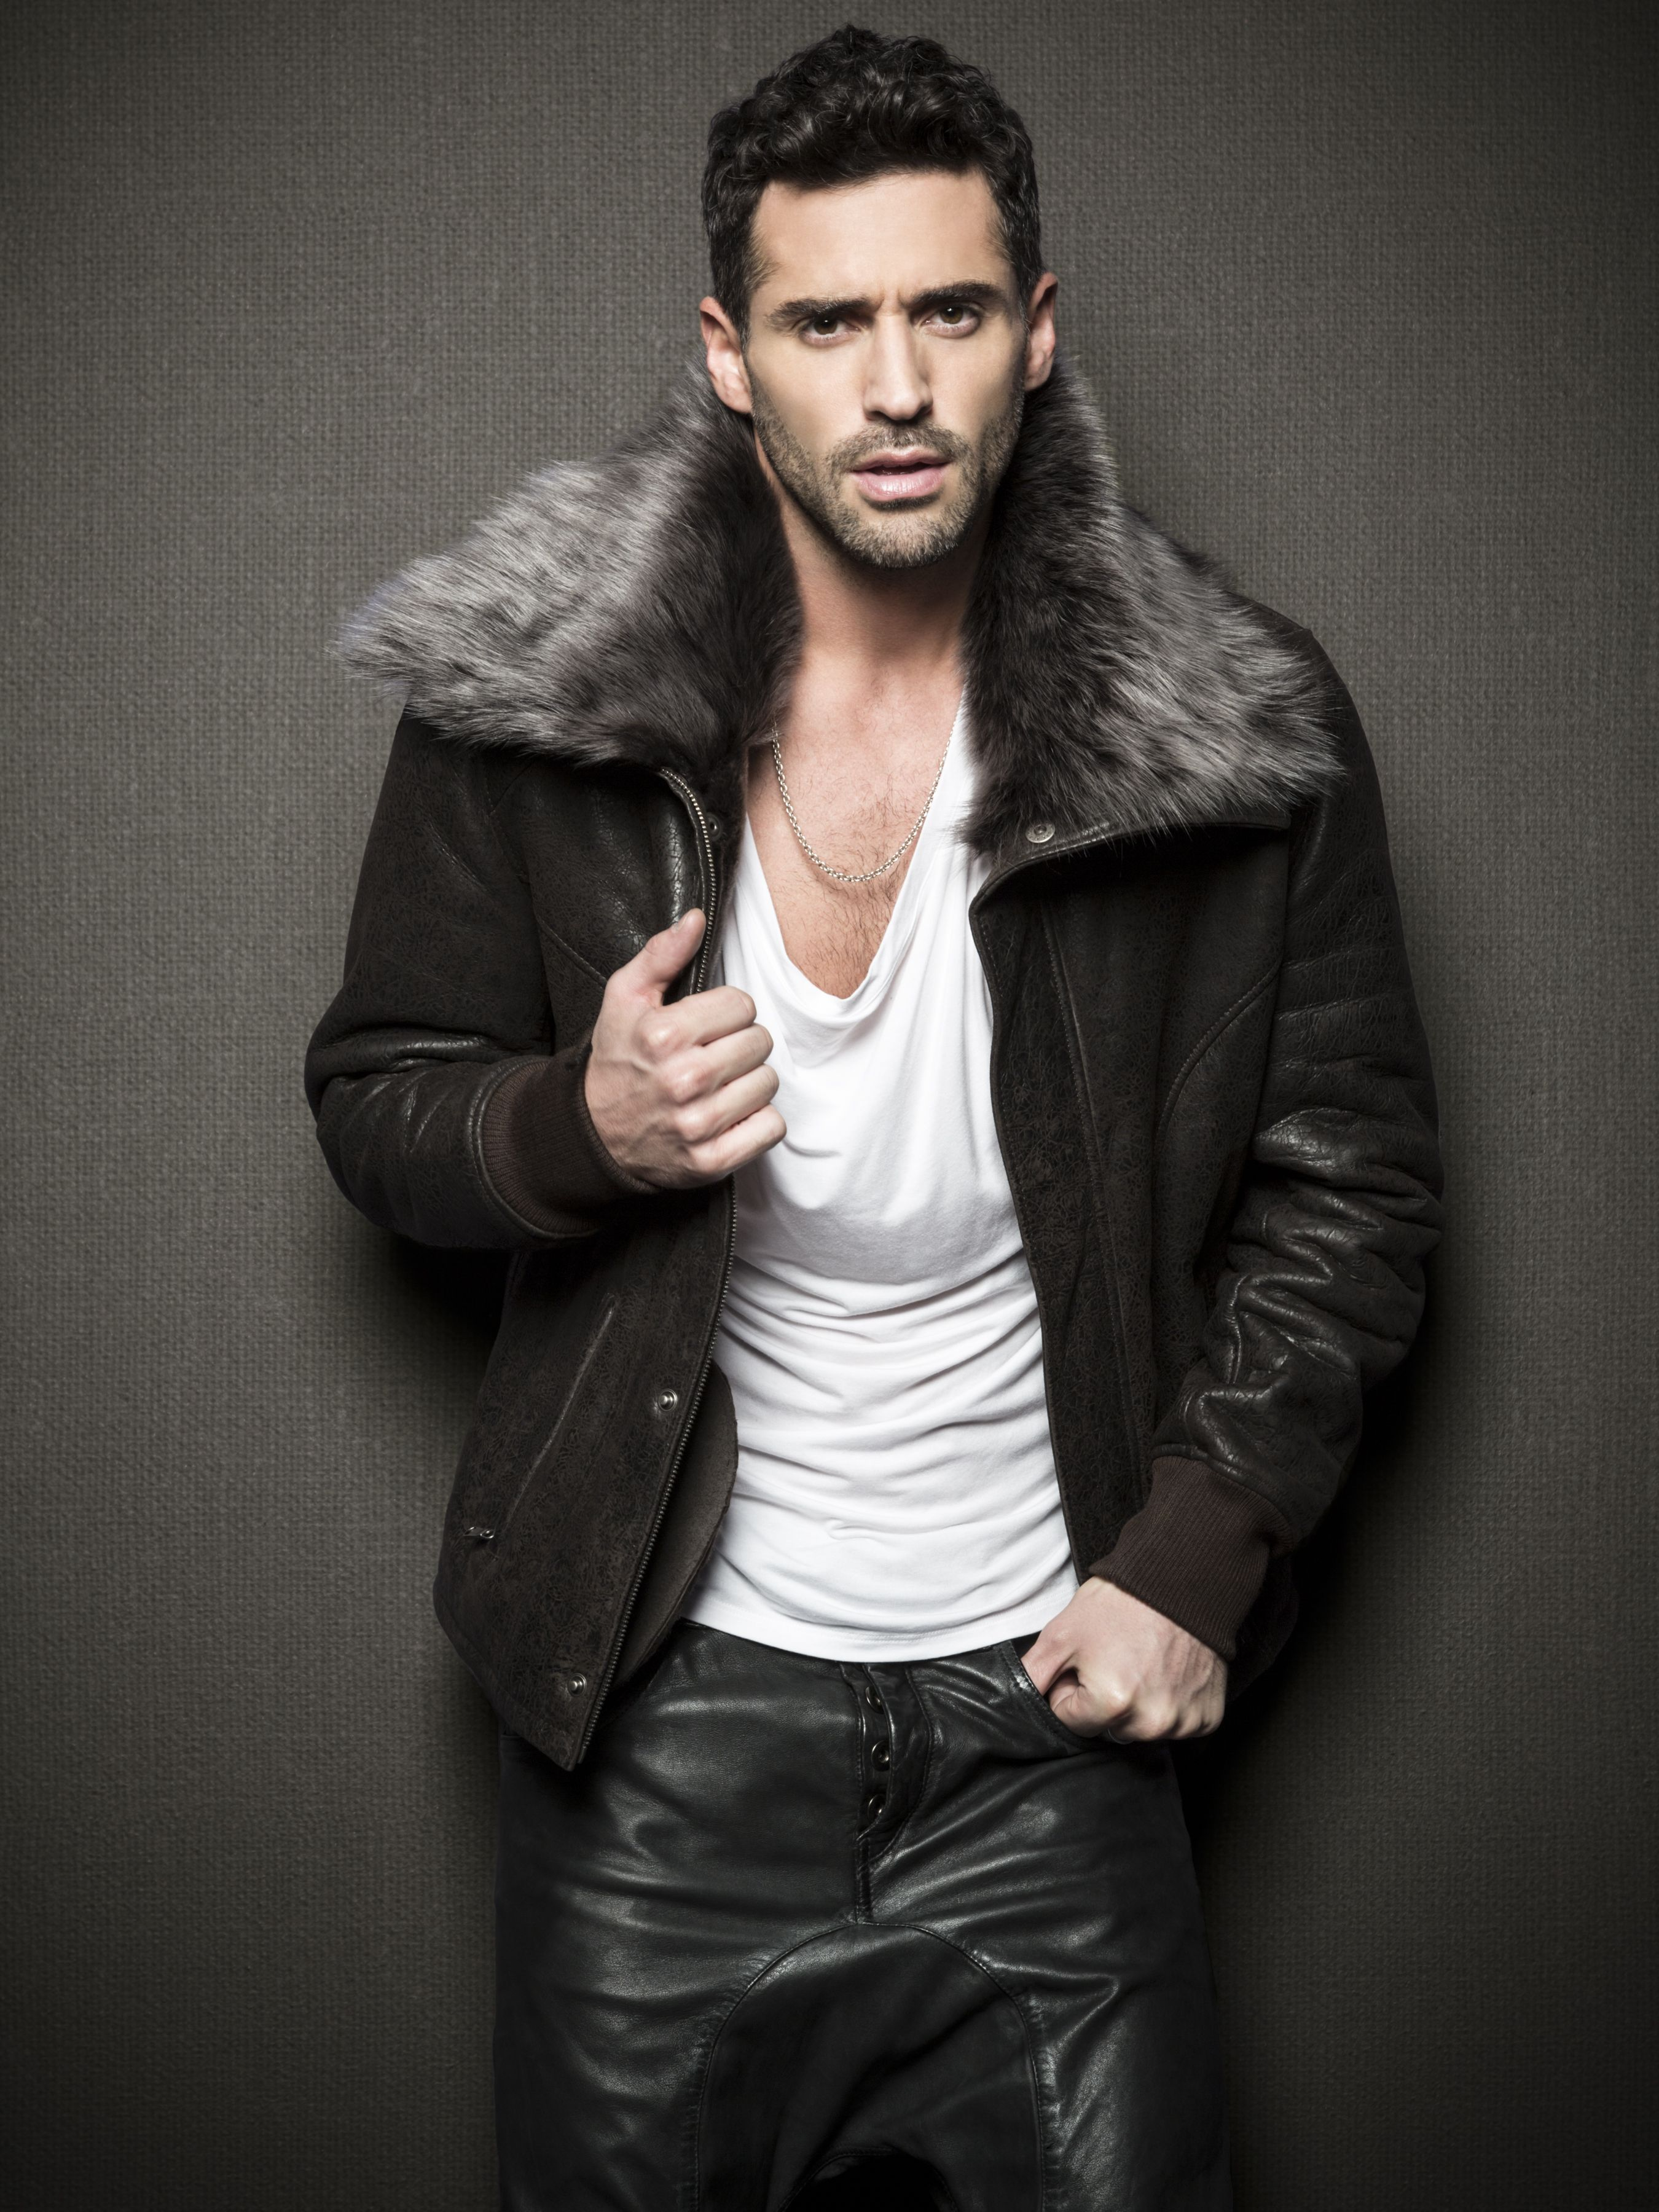 d71f0fd061ab7 by La Marque Collection #leather #coat #men #fall #winter #fw13 #bomber  #leatherpant #dropcrotch